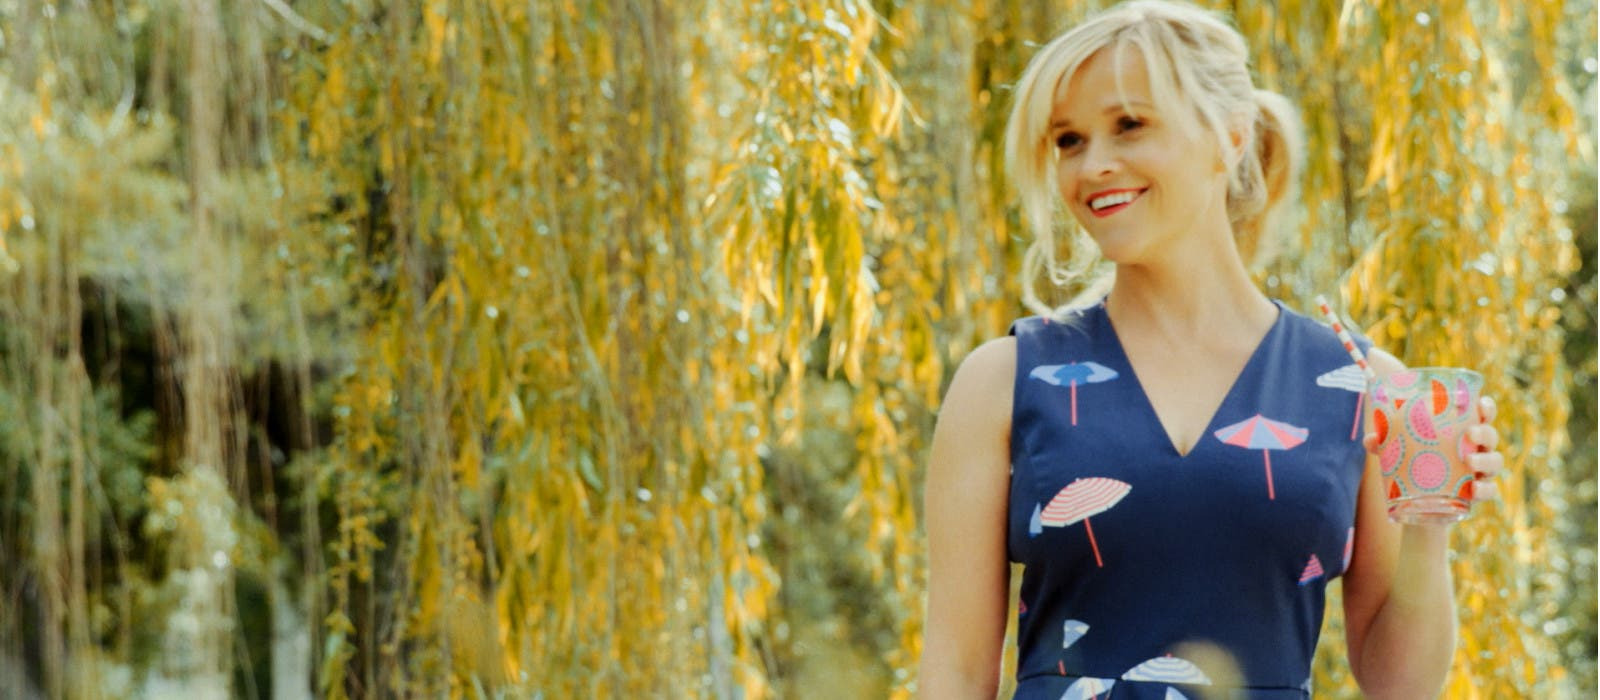 Now at Nordstrom: Draper James, founded by Reese Witherspoon.